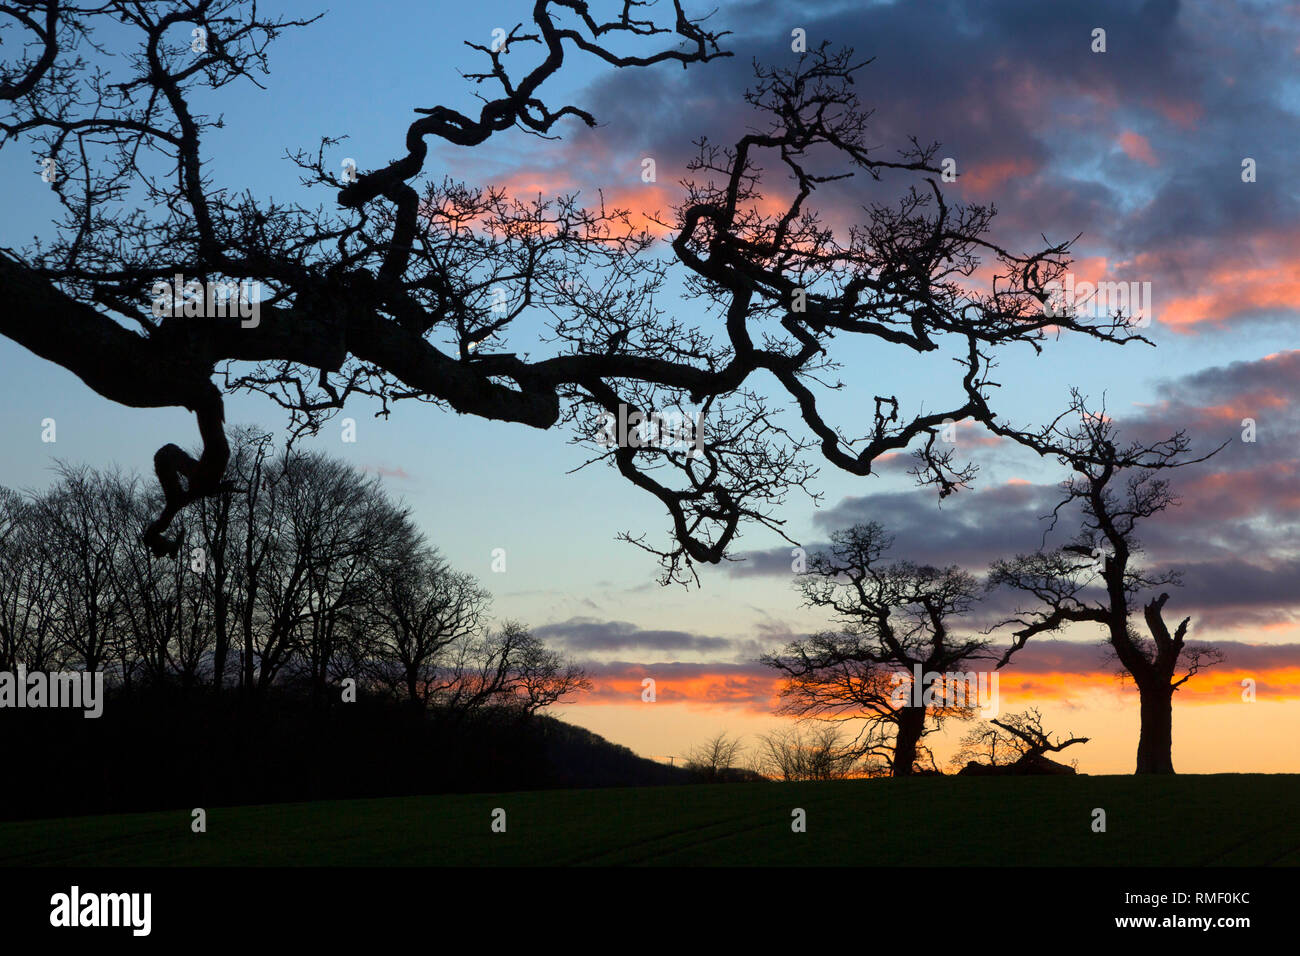 Winter, Trees, Sunset, Gatcombe, Godshill, Isle of Wight, England, UK, Stock Photo